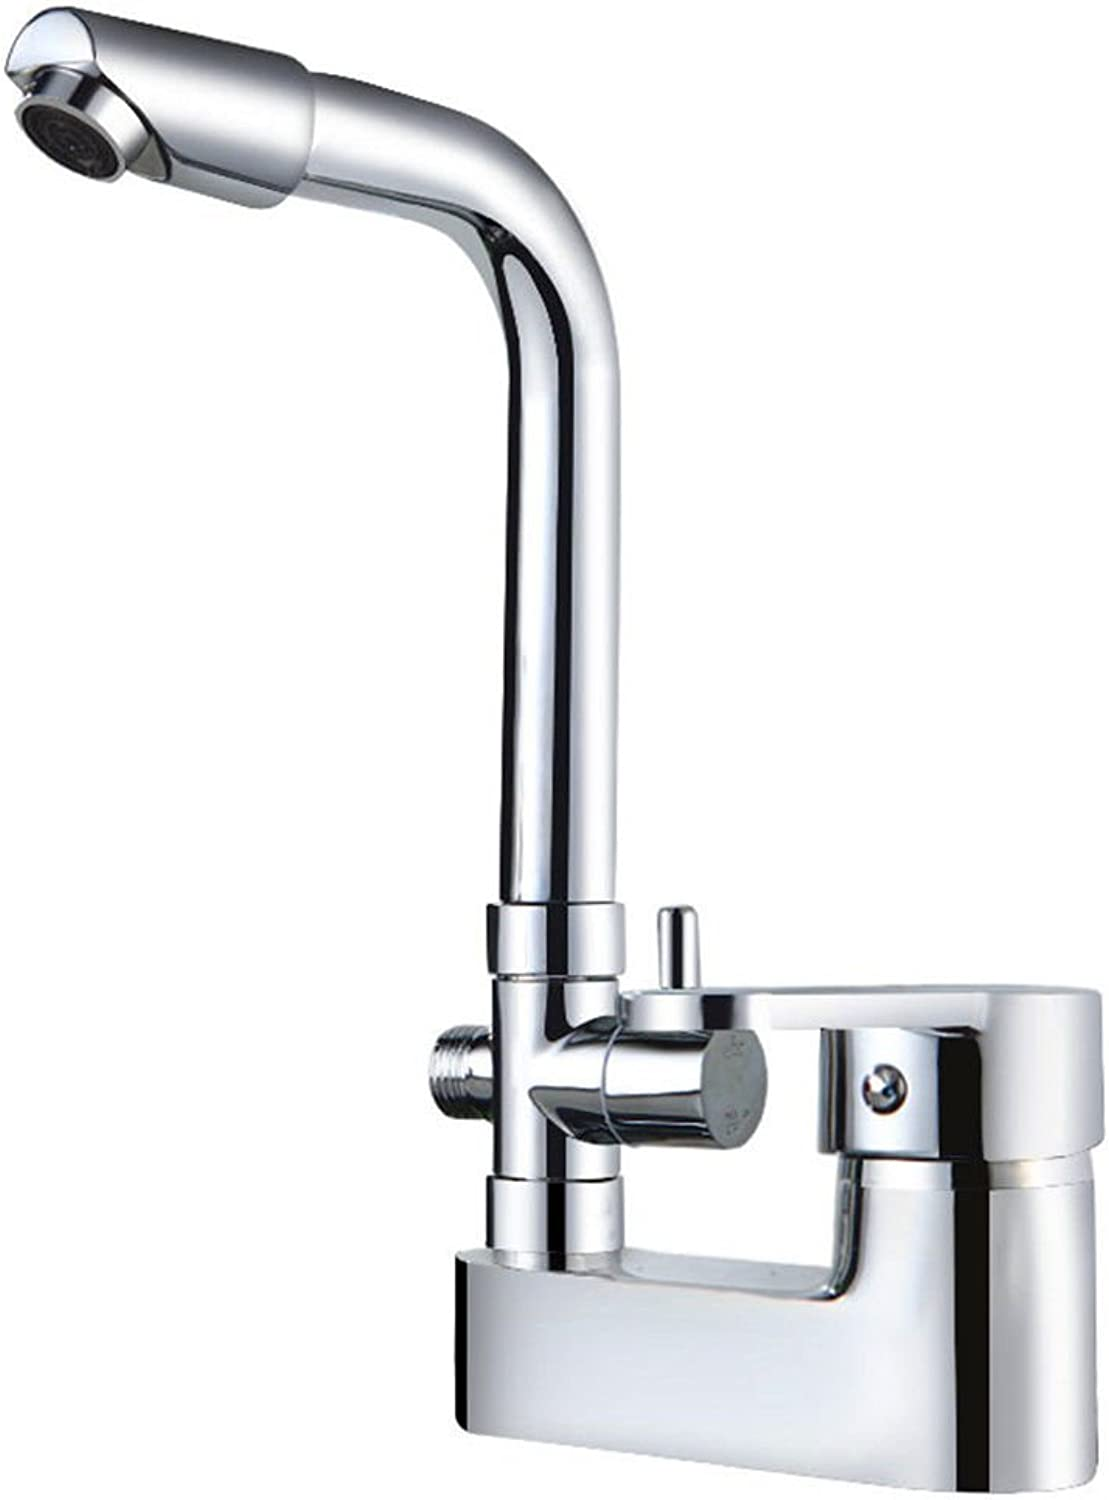 SADASD Modern Copper Bathroom Double Hole Shower Faucet Function Double Handle Double Control Shower Hot and Cold Mixer Tap